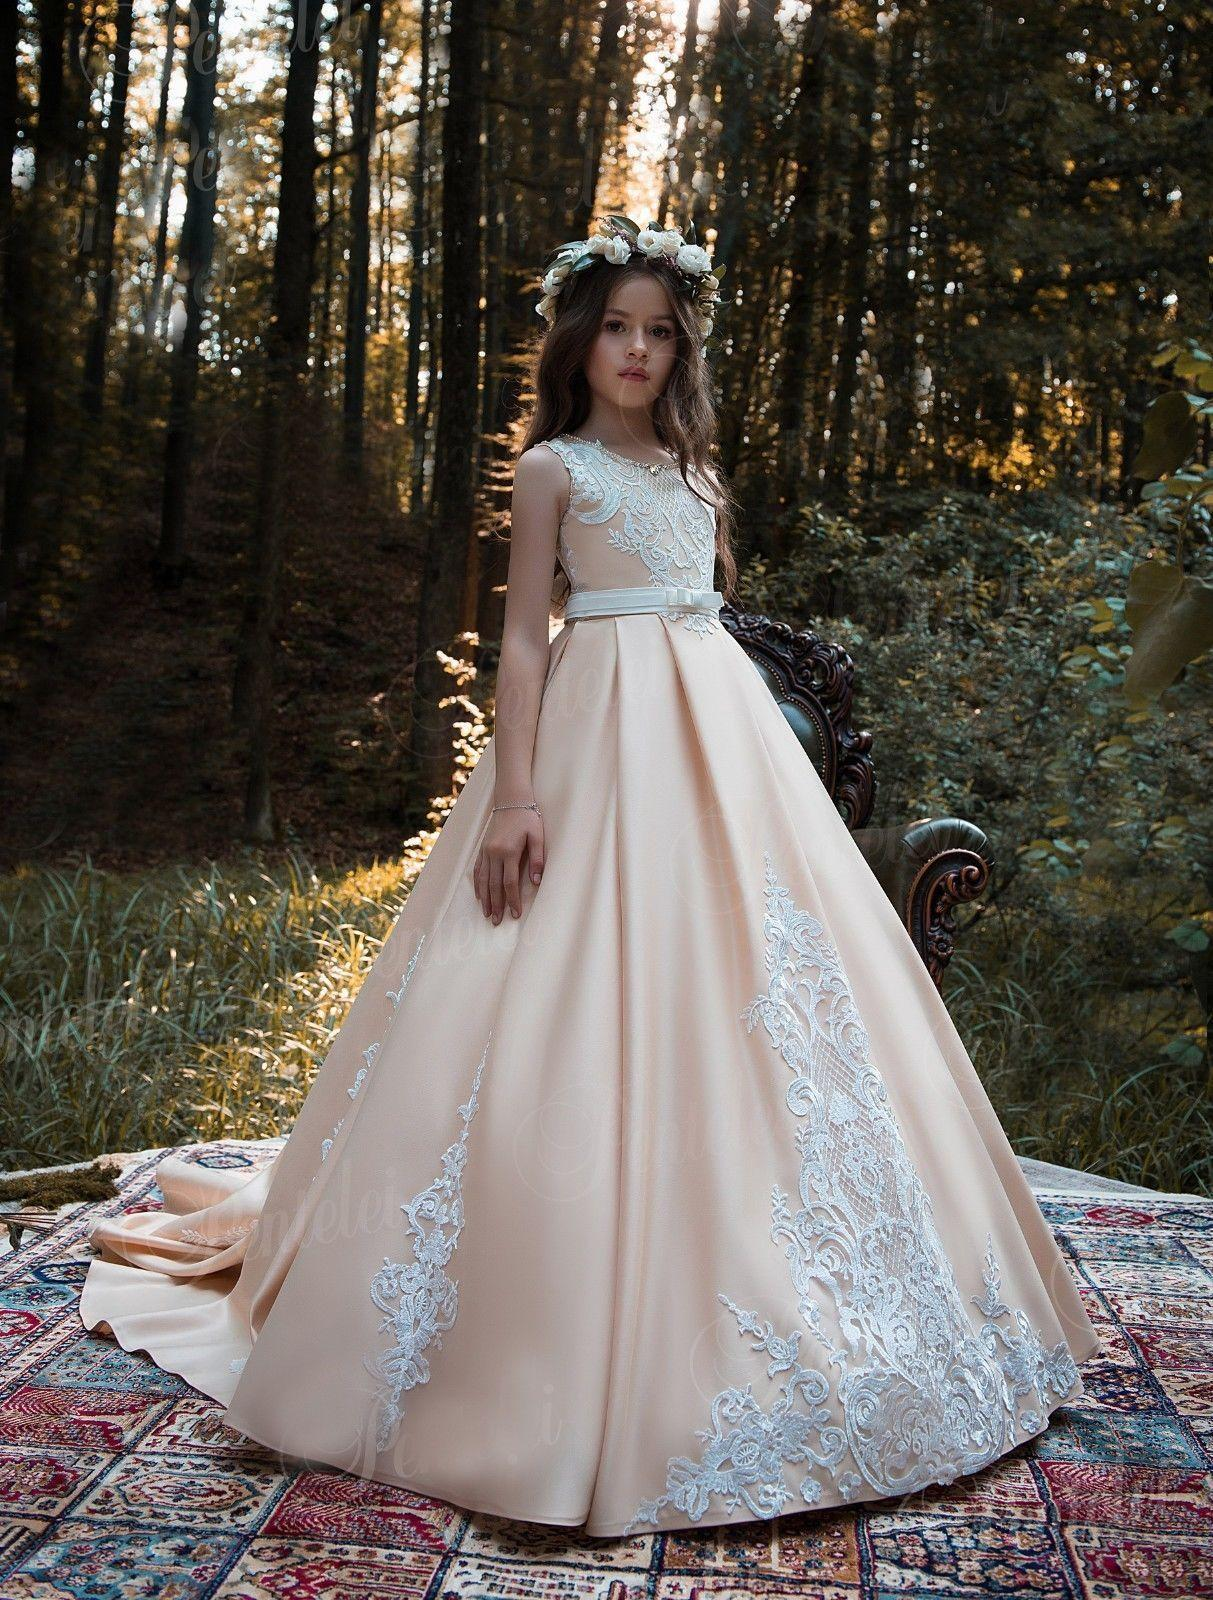 8201d95b1ed Girls Pageant Dresses For Teens Jewel Neck Illusion Sleeves Lace Crop Top  Tiered Skirt Girls Party Gown Flower Girl Dresses Canada Flower Girl  Headbands ...